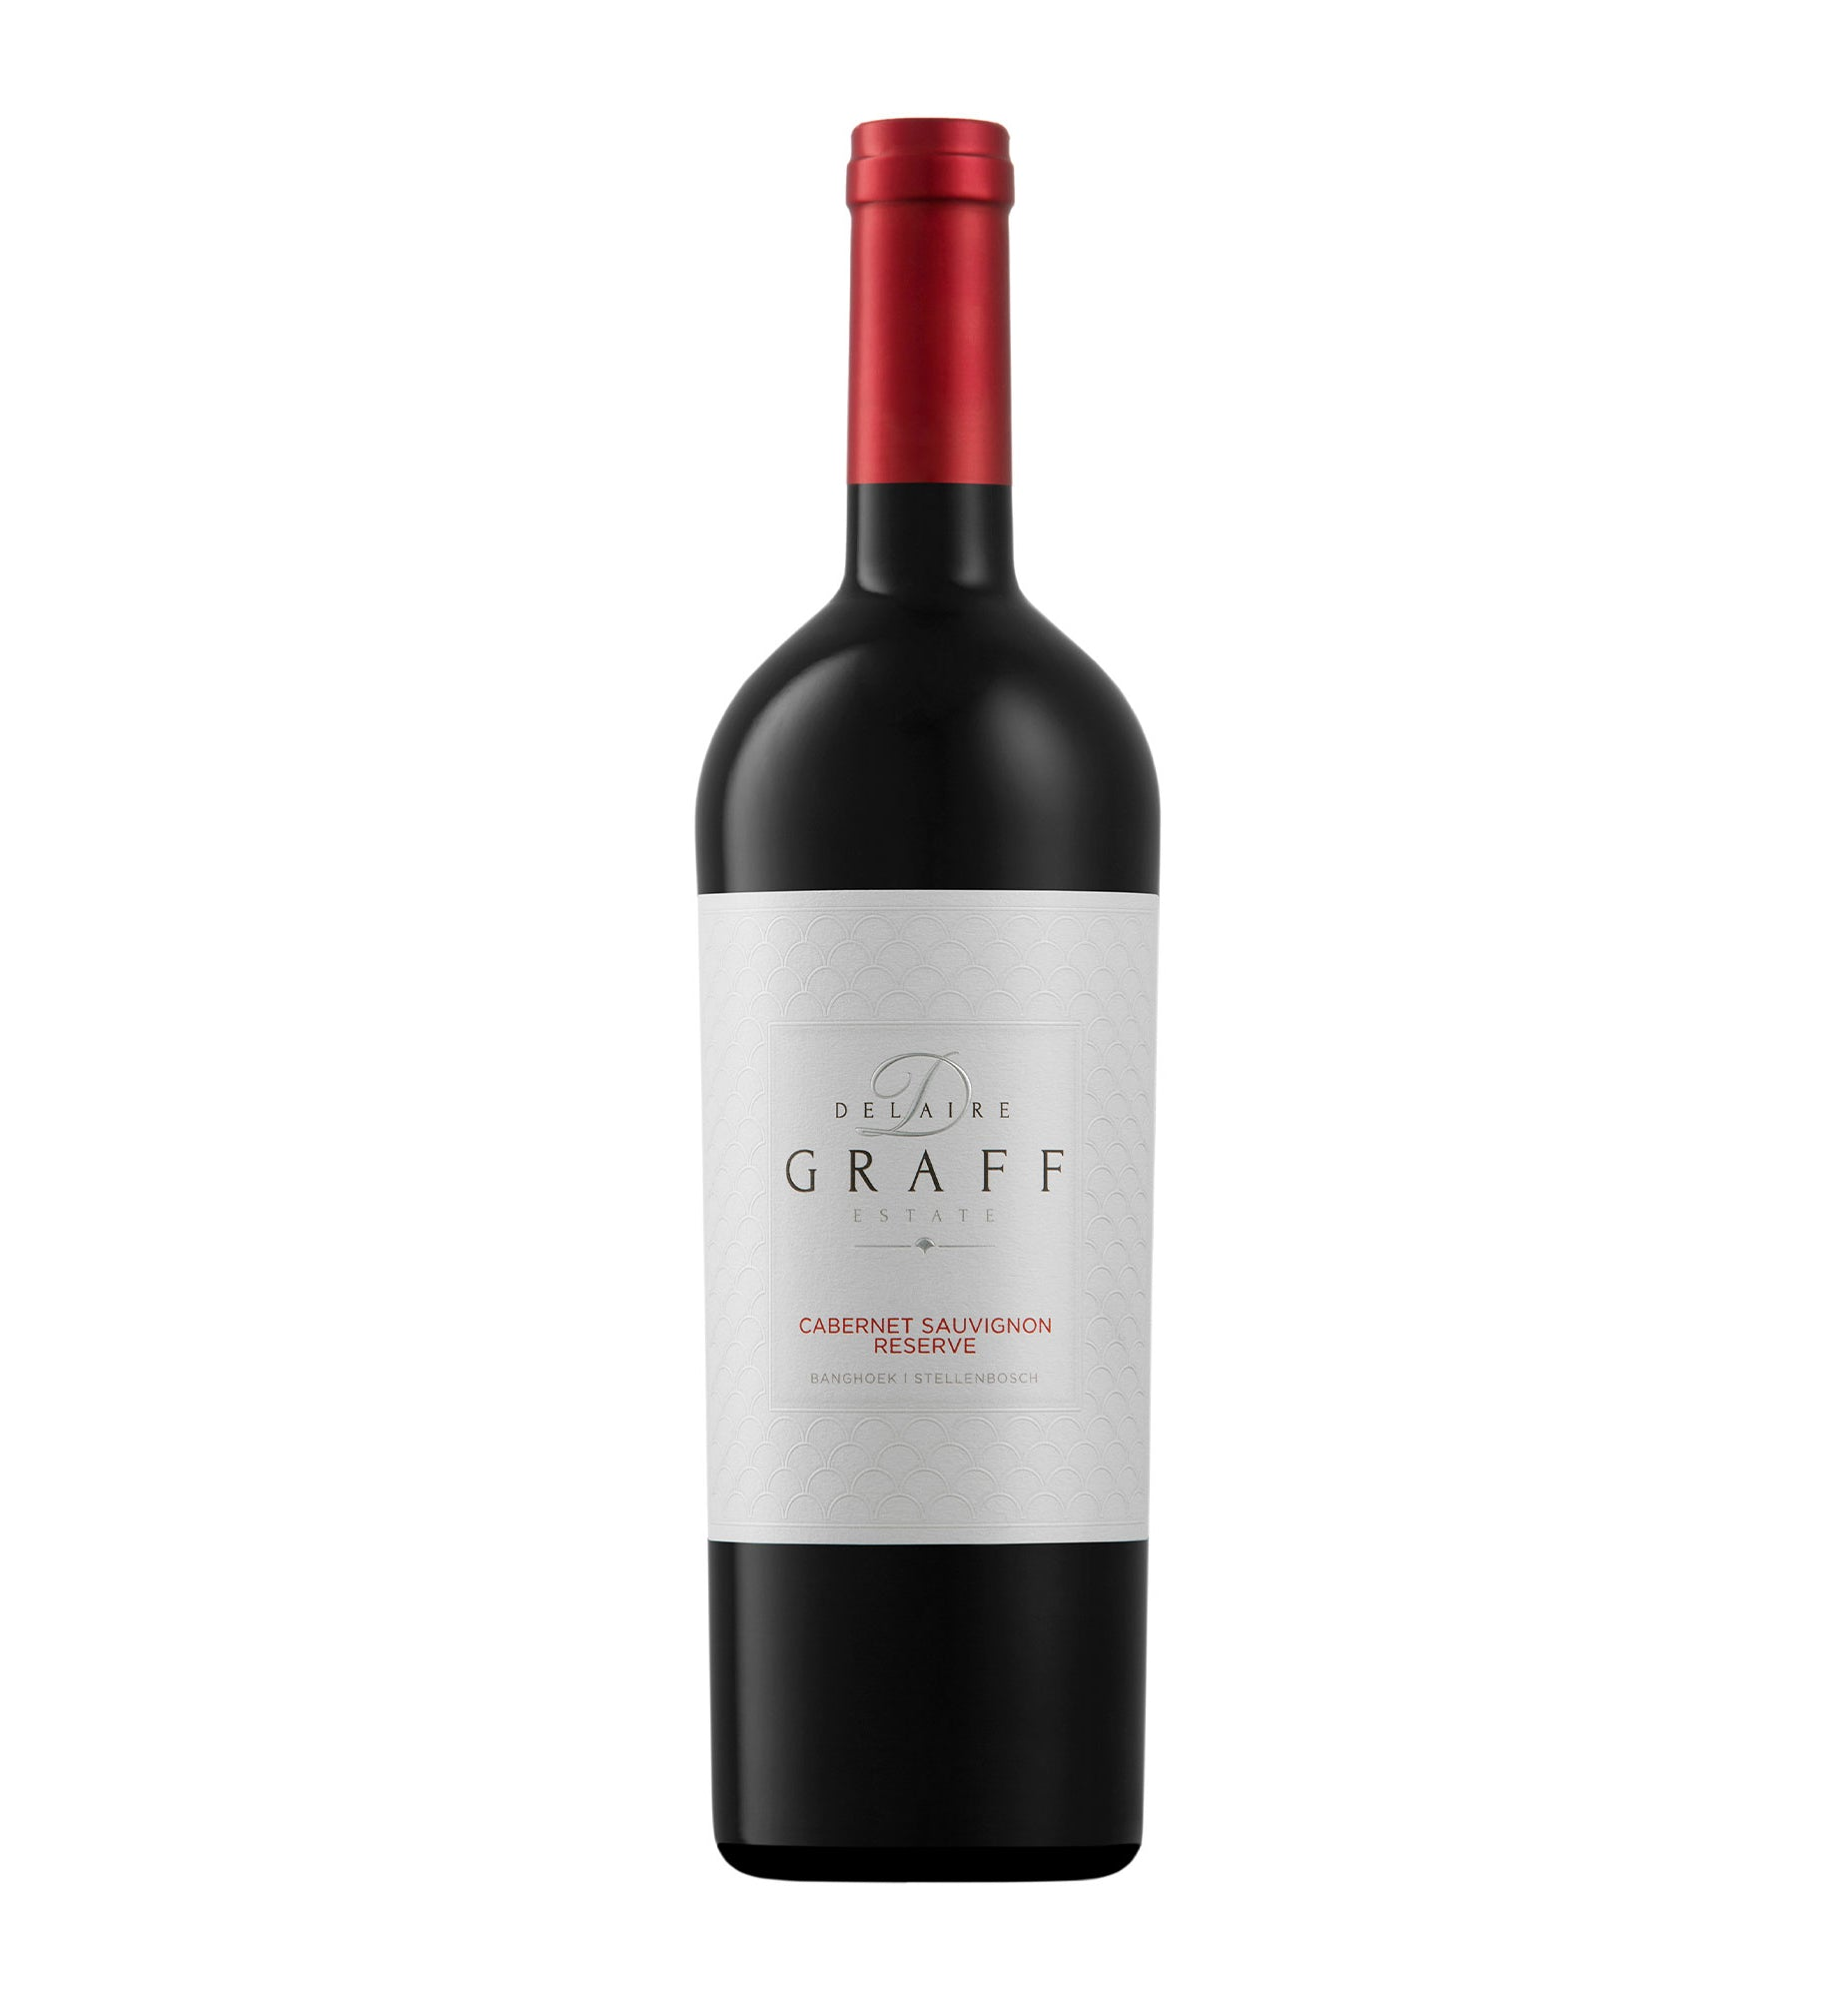 Buy cabernet sauvignon red wine in South Africa from Delaire Graff Estate